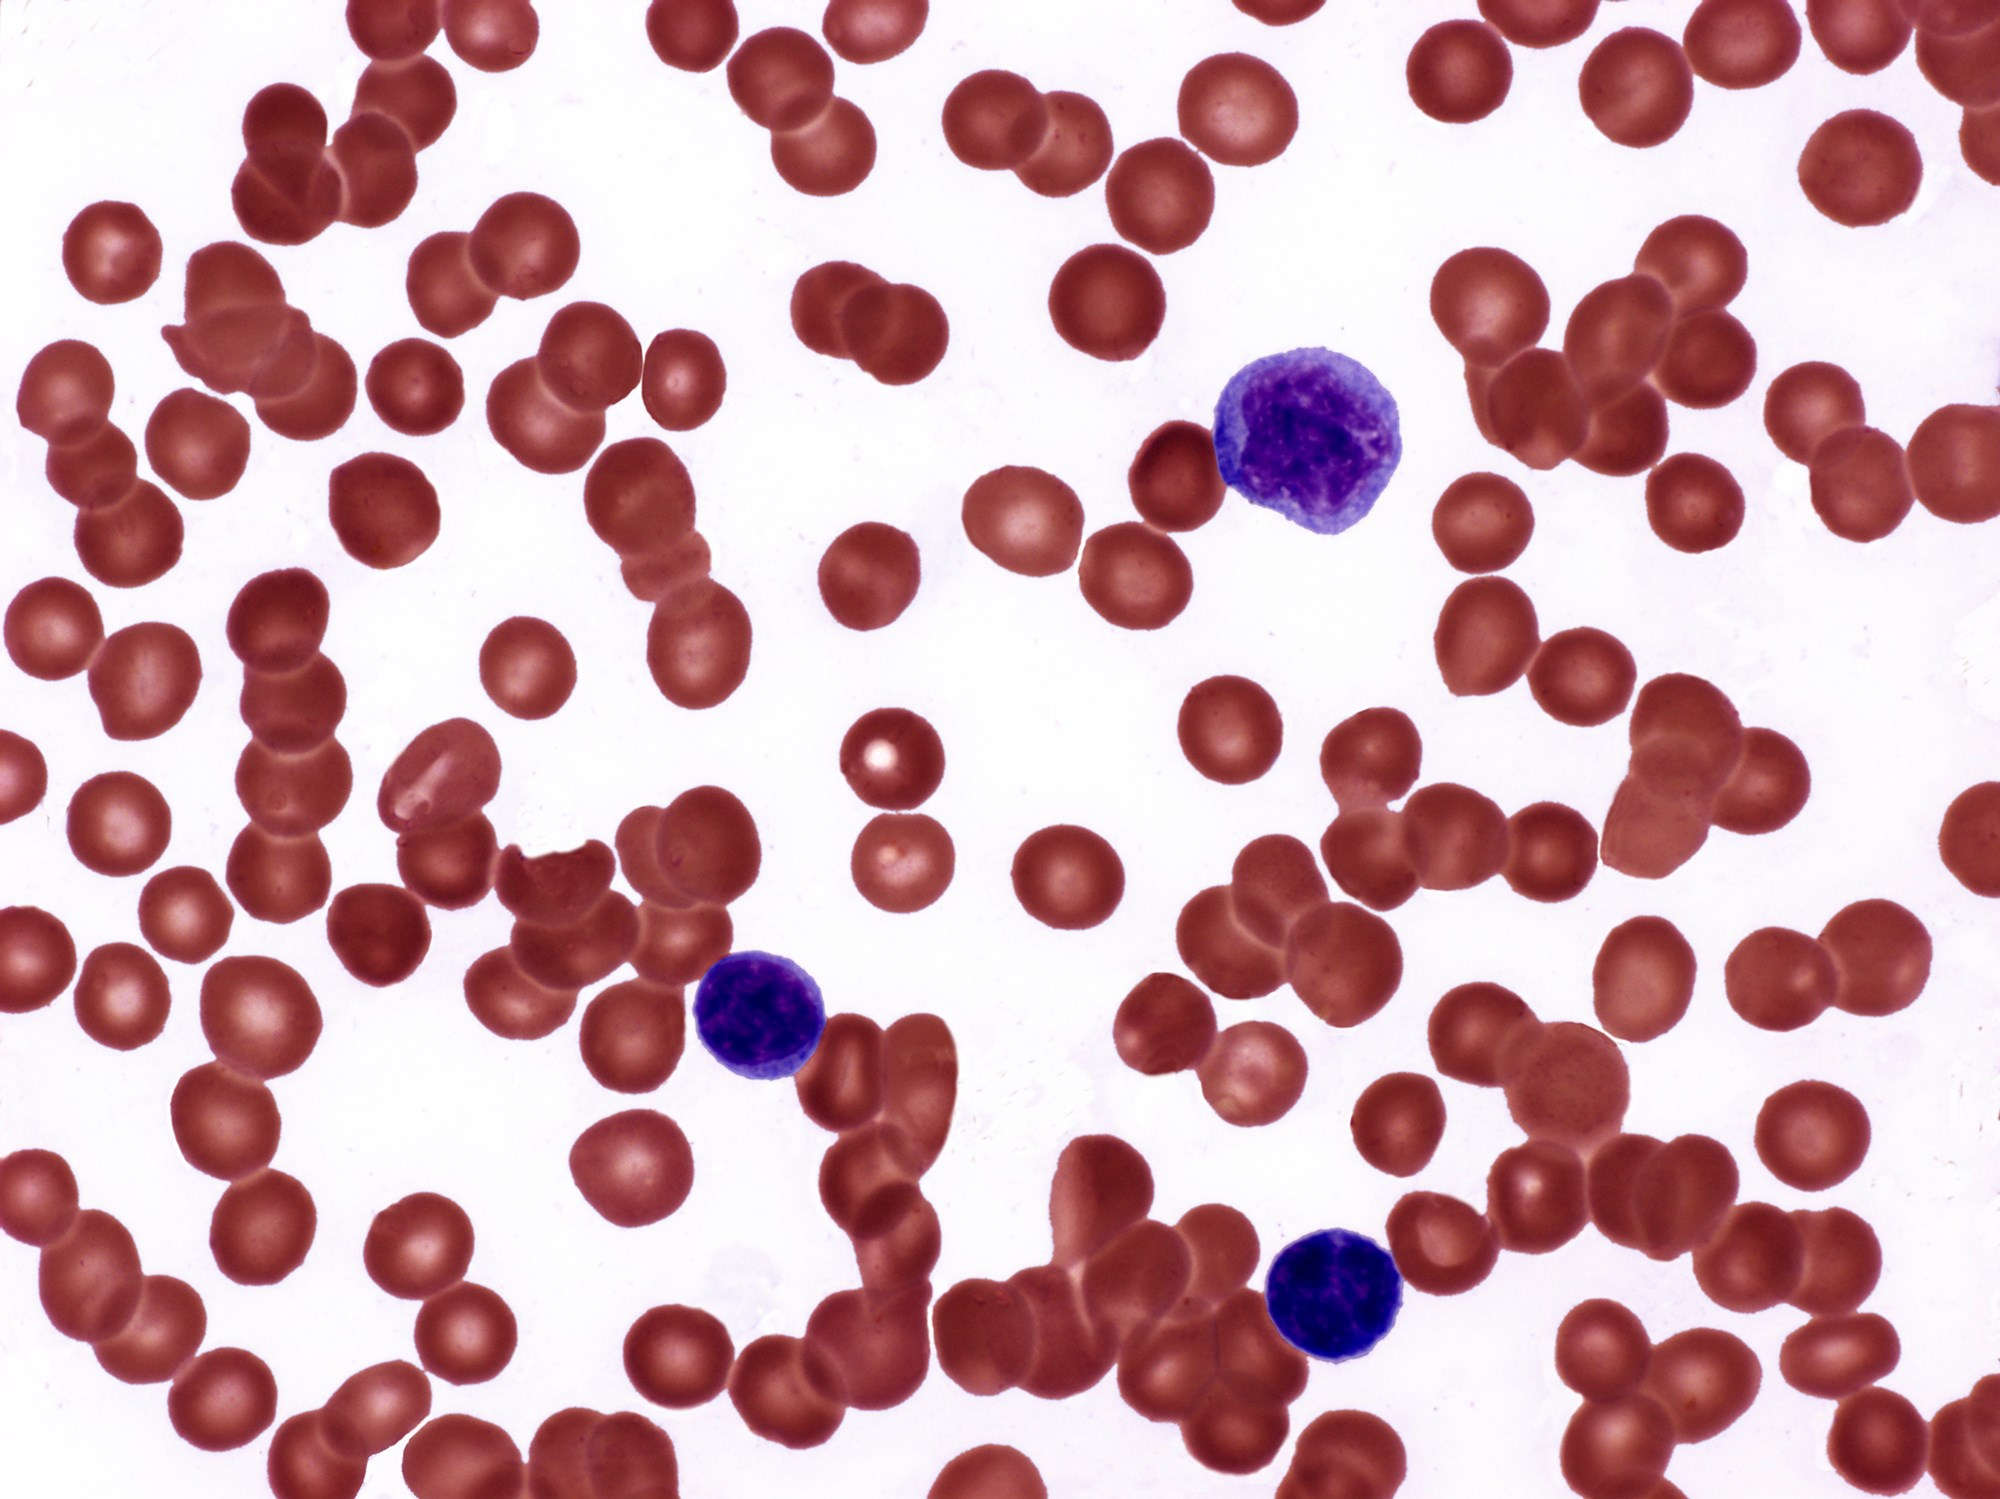 Light micrograph of a blood smear from a patient with polycythemia vera.